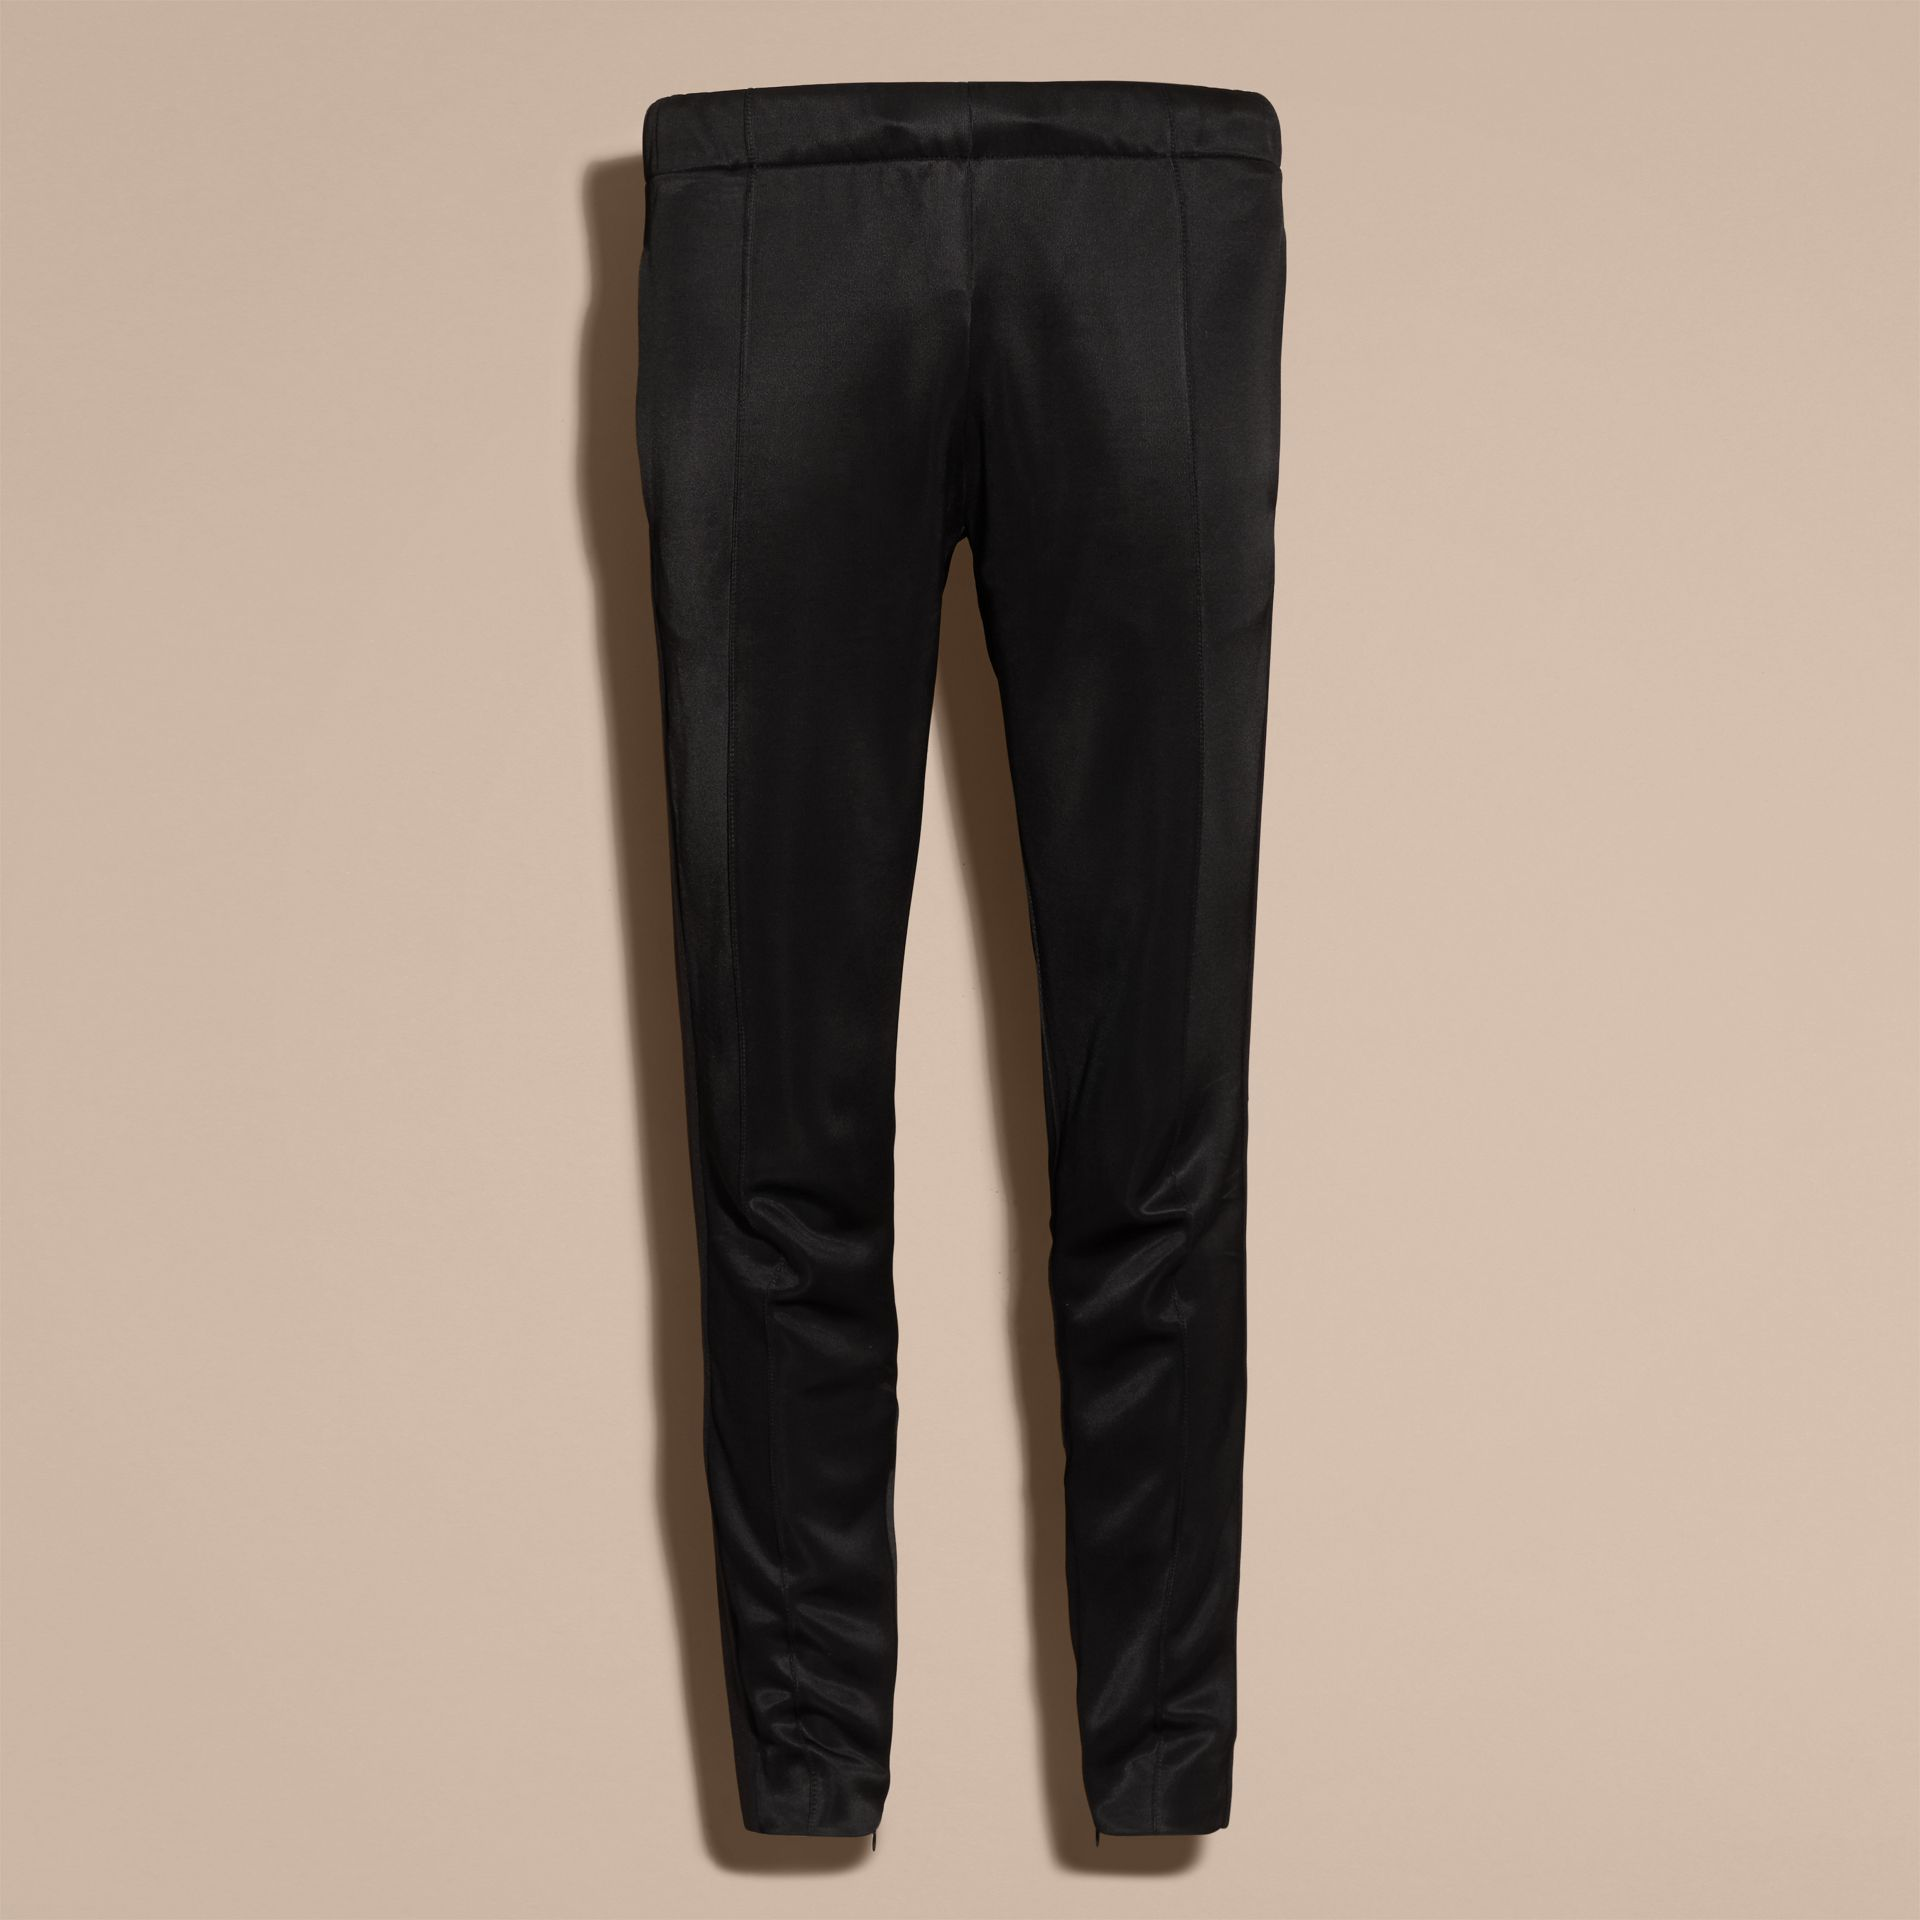 Black High-shine Track Pants Black - gallery image 4